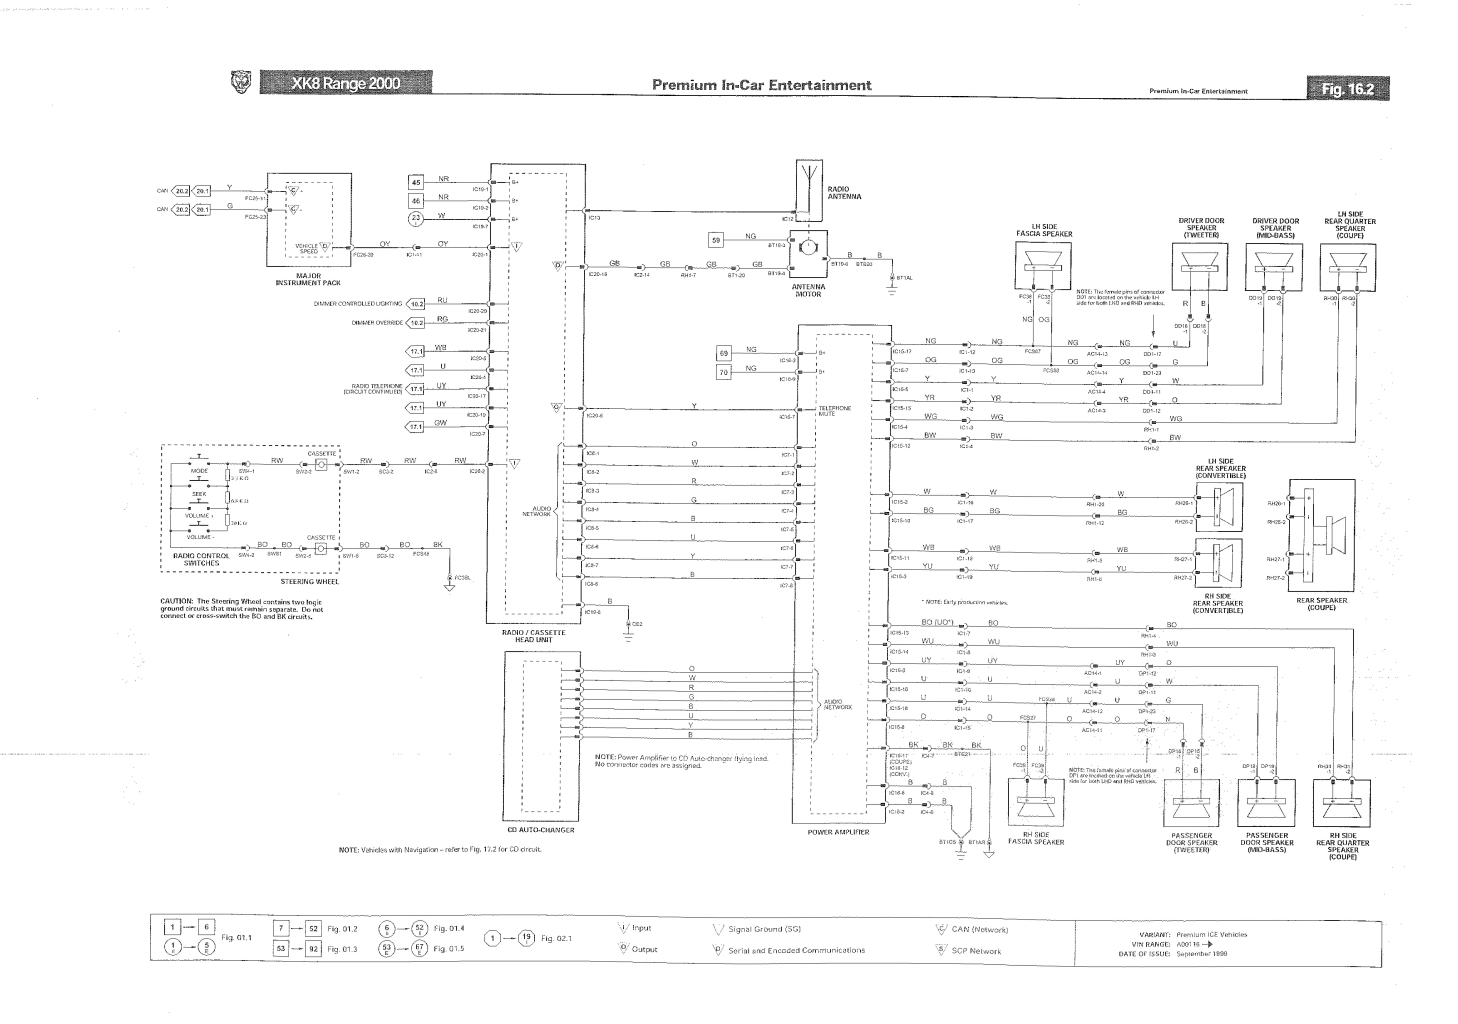 jaguar wiring diagram 2000 10 gesundheitspraxis muelhoff de \u2022 Wiring Diagram 2001 Jaguar XJ8 2000 jaguar xk8 wiring diagram tiz carter co uk u2022 rh tiz carter co uk wiring diagram 2000 jaguar s type fender jaguar wiring diagram